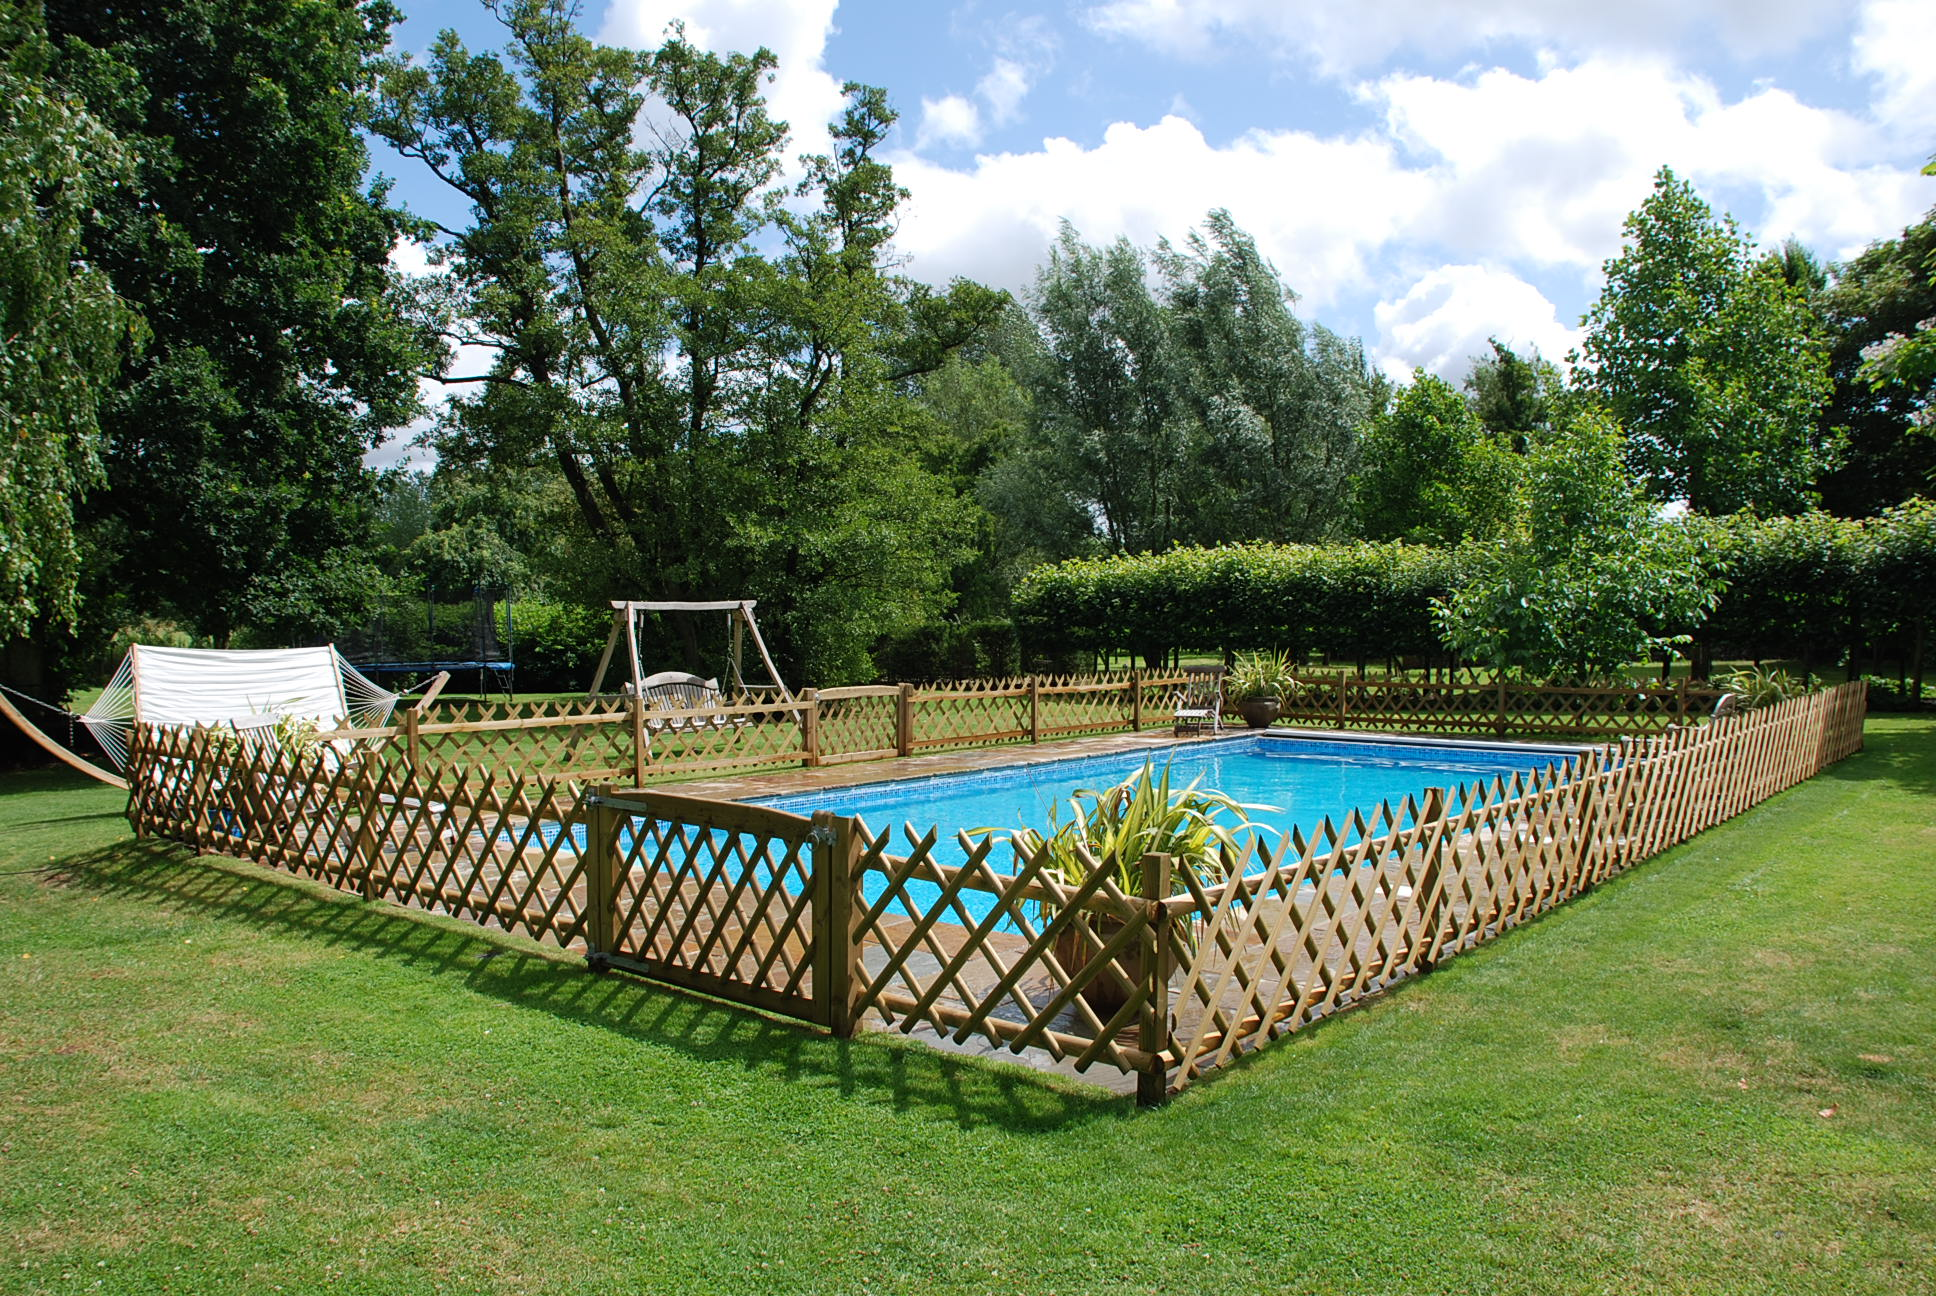 Poolside Barbecues U2013 An Essential Element Of Outdoor Swimming Pool  Designs For Ultimate Summer Fun